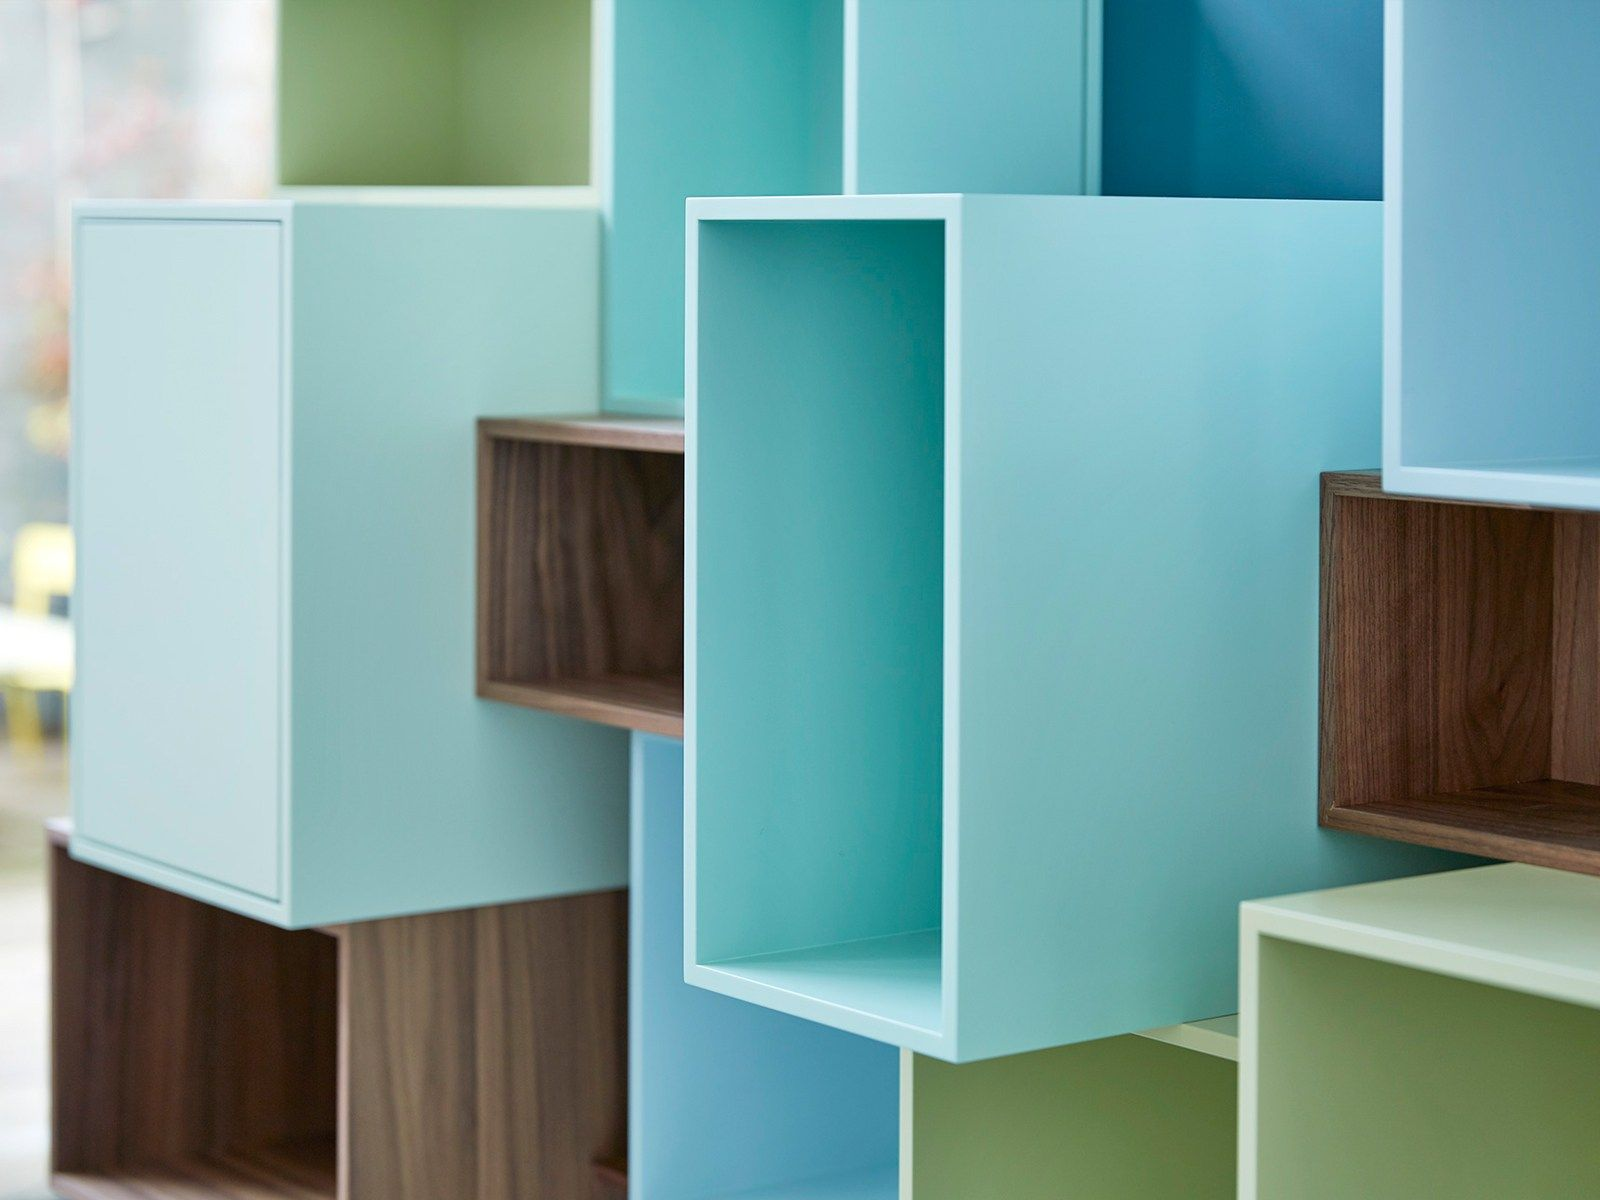 Modular furniture system for stylish showpieces